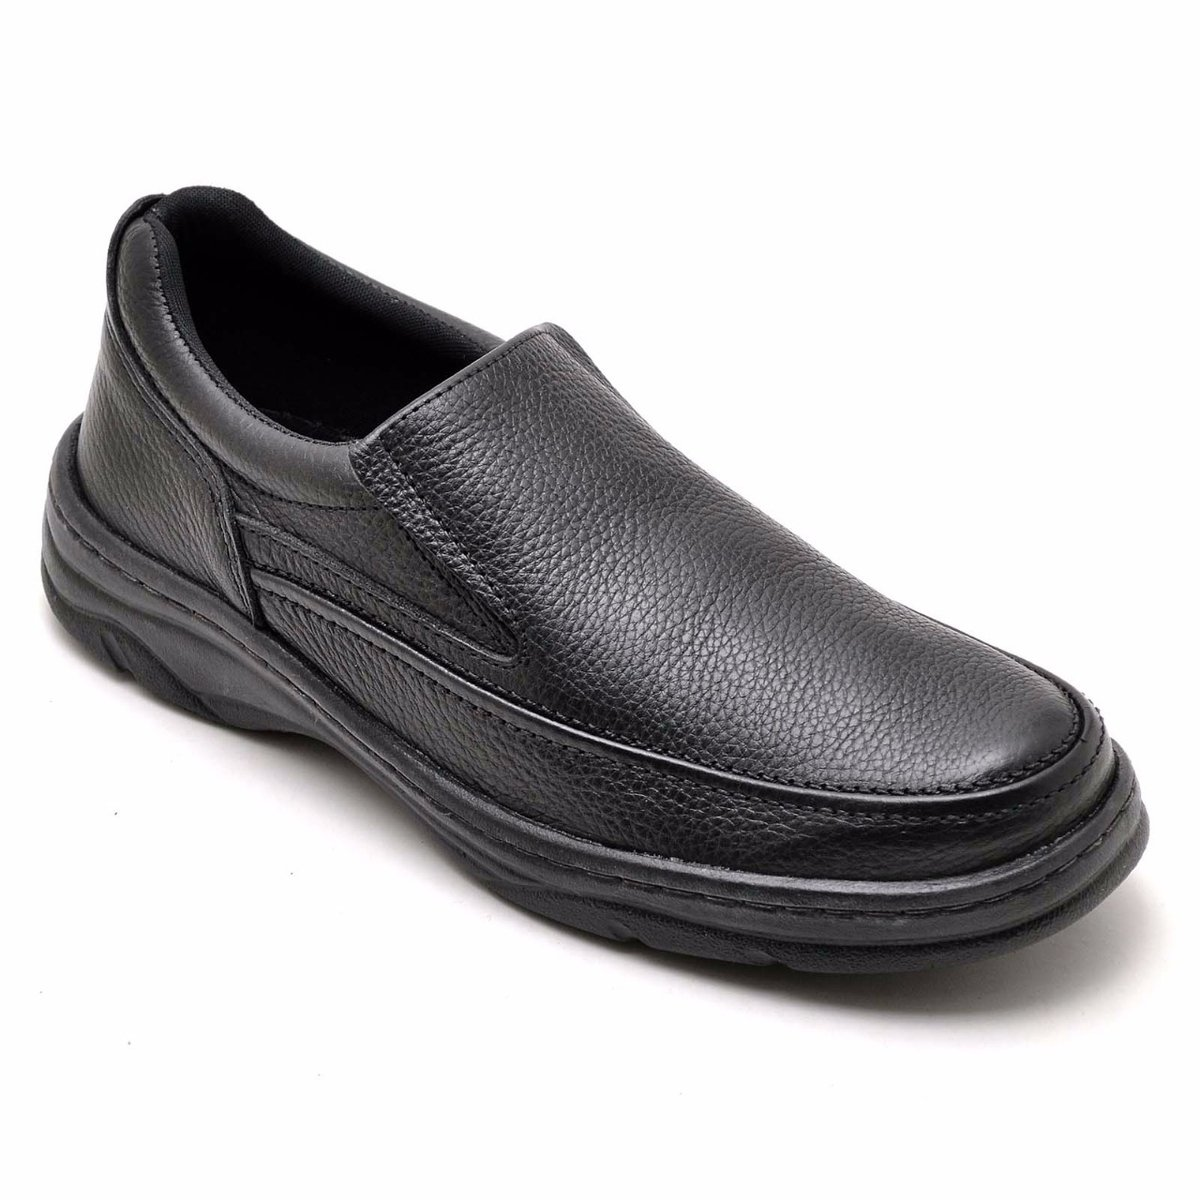 Social DR Shoes Sapato Masculino Masculino Sapato Social Casual Sapato Preto Social DR Shoes Preto Casual gAYxqSHwR